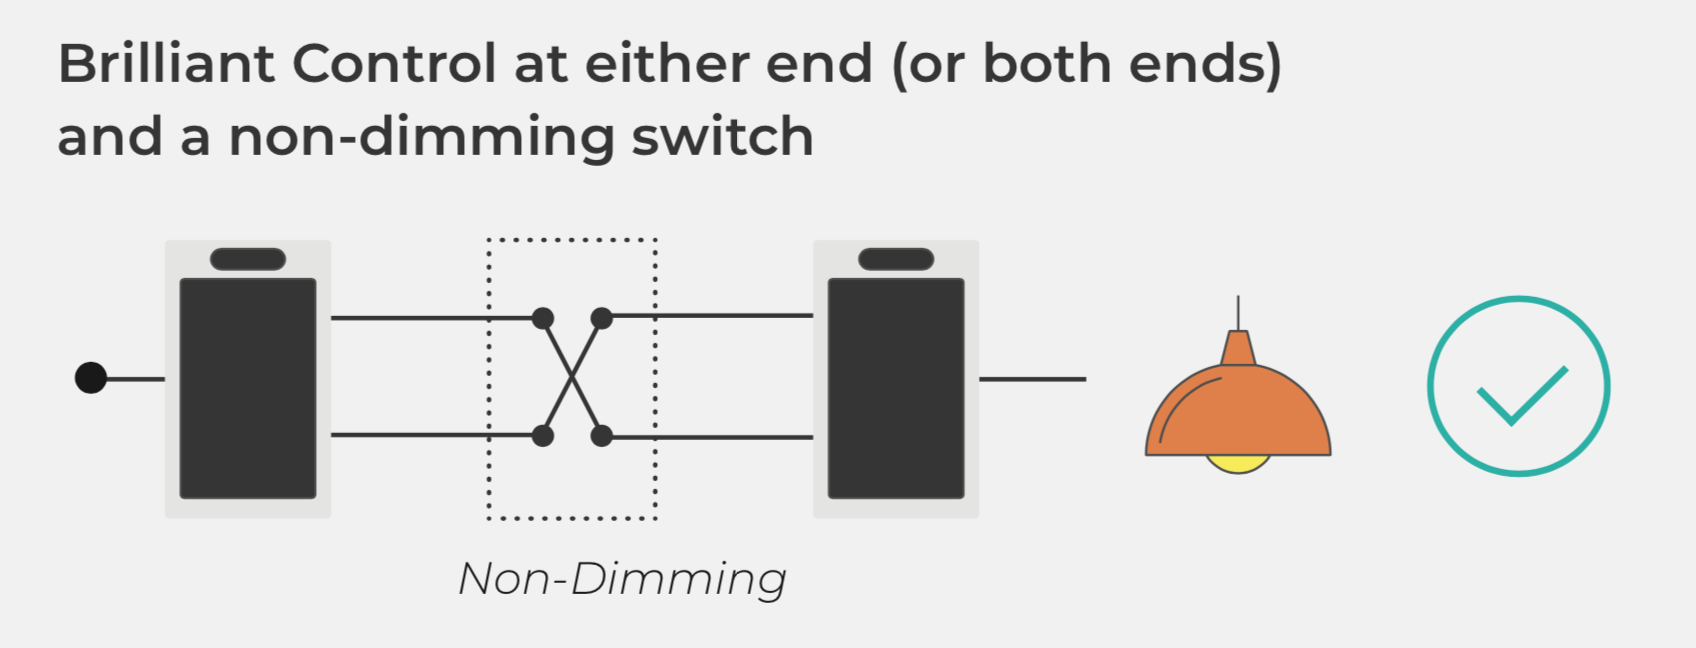 Brilliant_Control_at_either_end_or_both_ends_and_a_non-dimming_switch.png